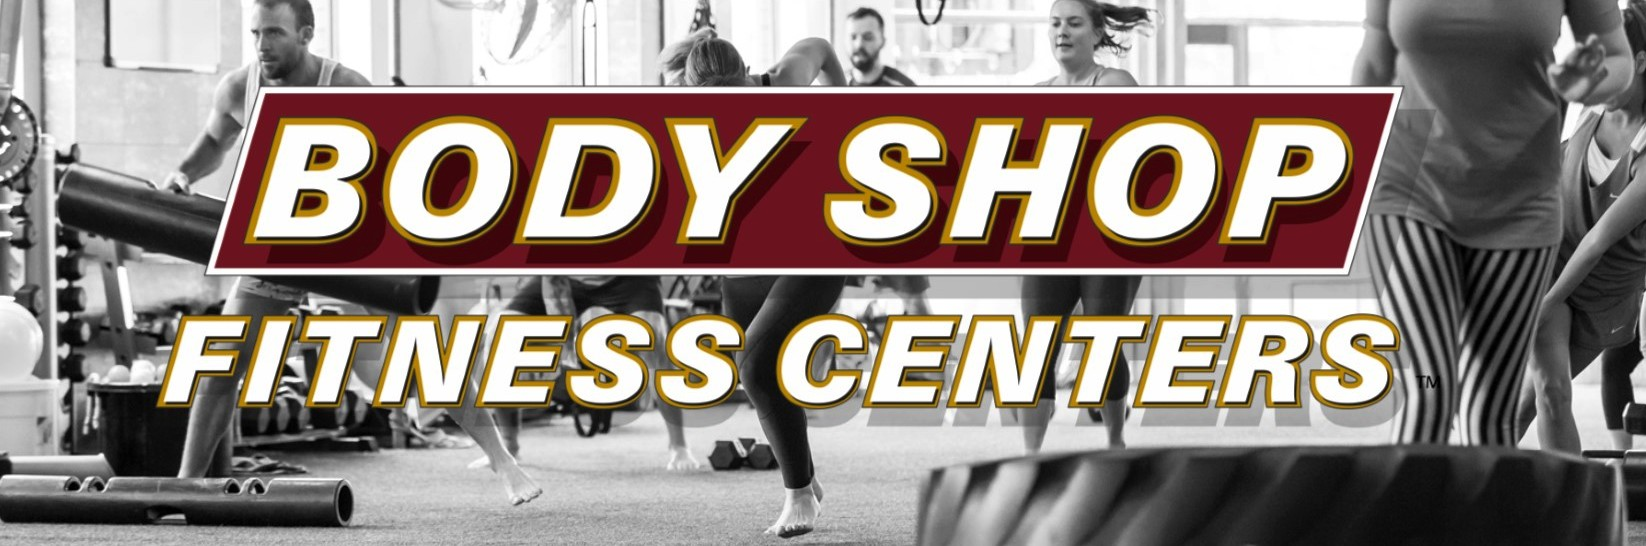 Body Shop Fitness Centers